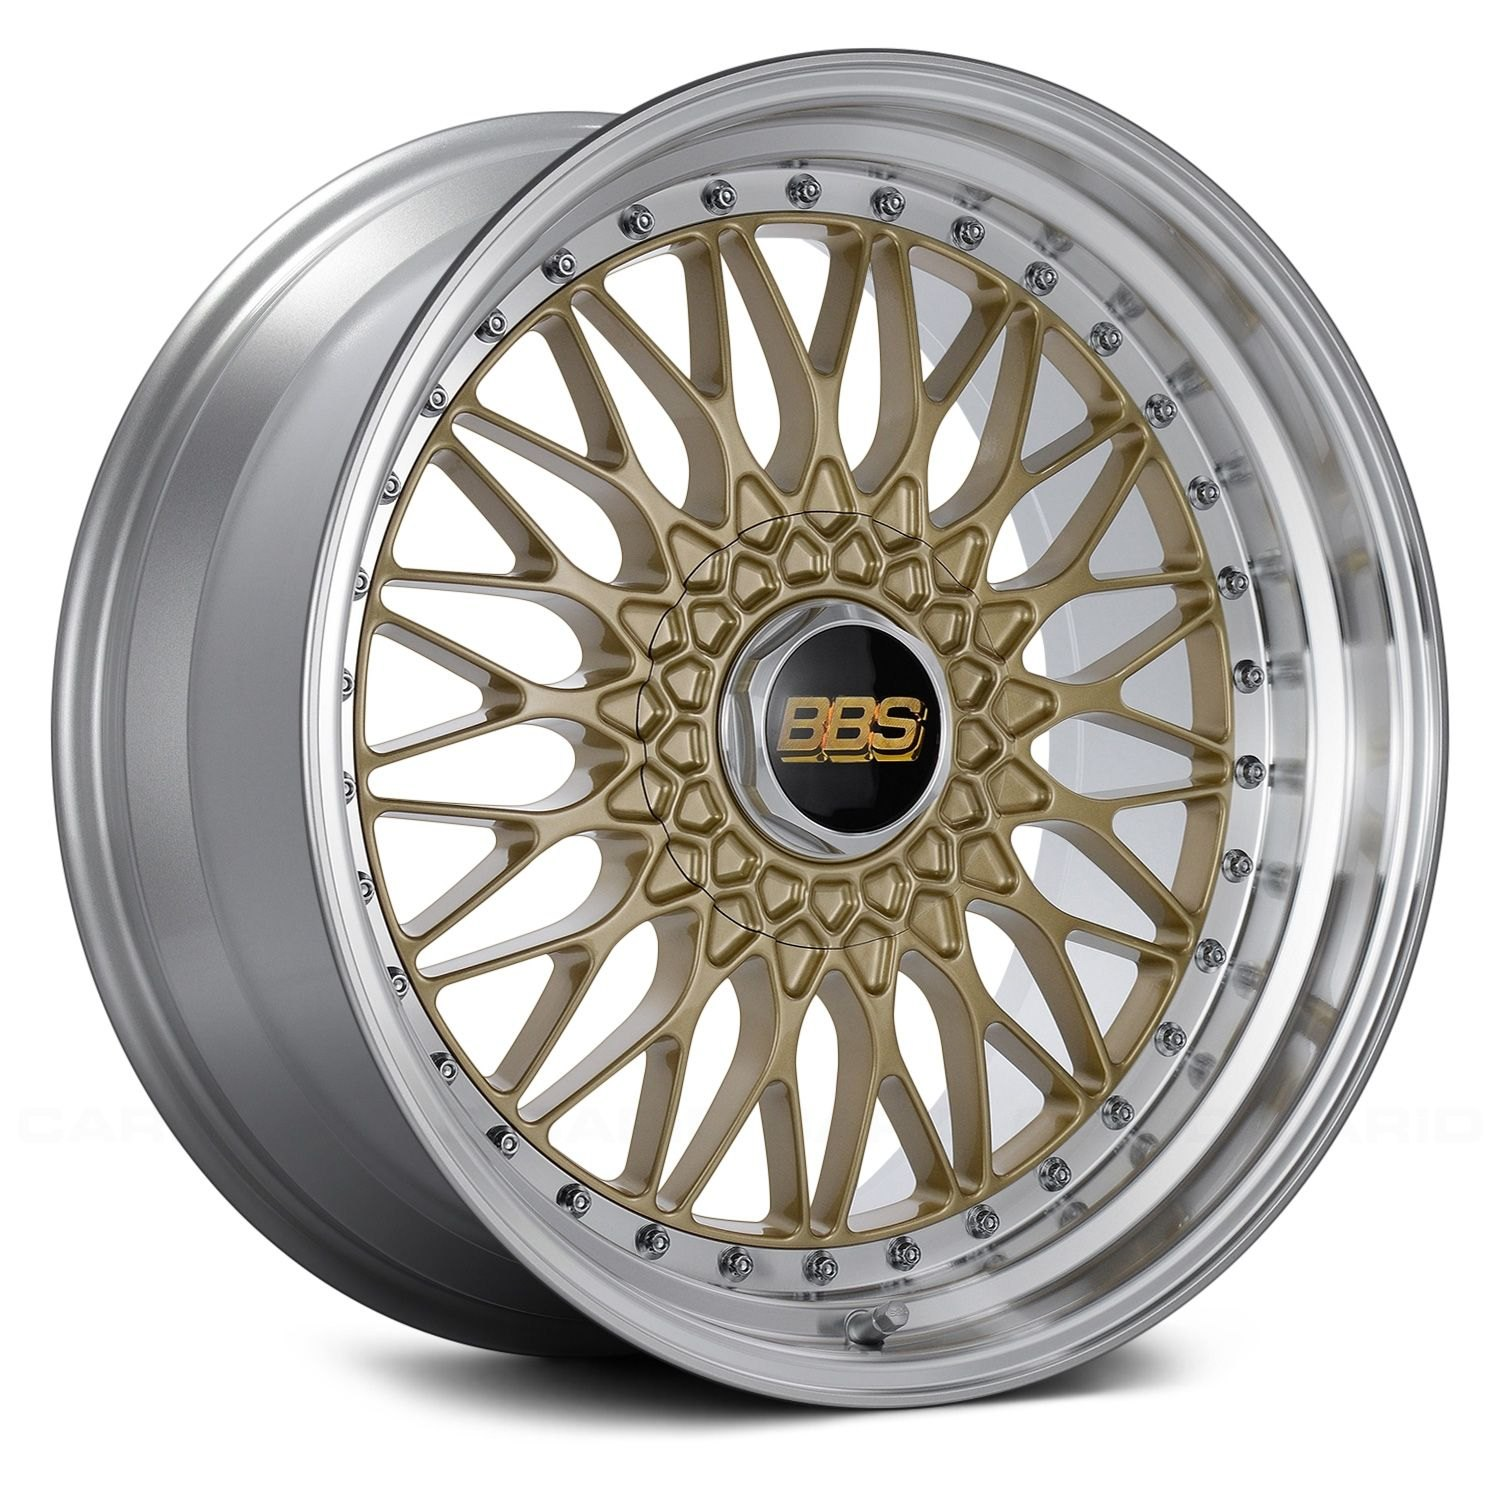 BBS® SUPER RS Wheels - Gold with Dia-Cut Rim and Clear Coat Rims ...